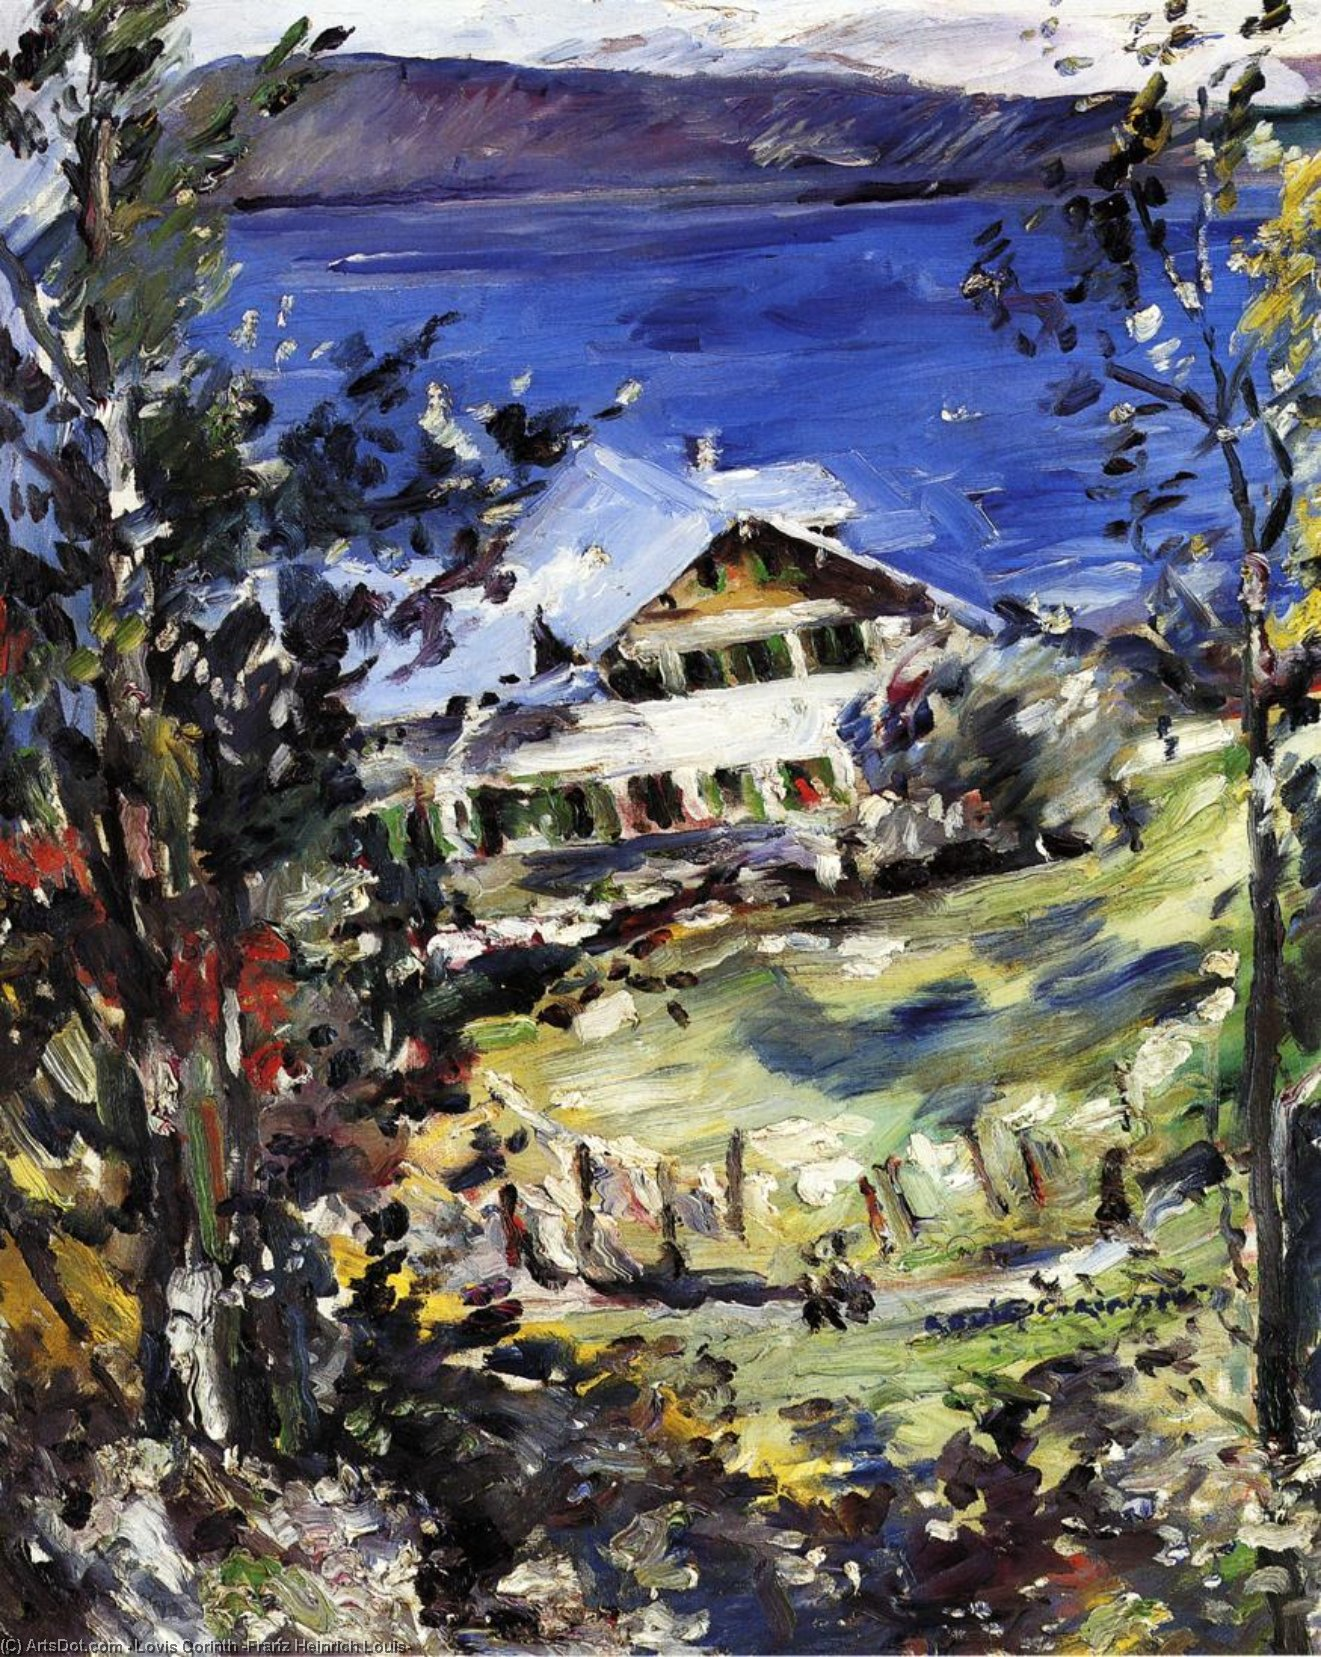 Wikioo.org - The Encyclopedia of Fine Arts - Painting, Artwork by Lovis Corinth (Franz Heinrich Louis) - The Walchensee, Country House with Washing on the Line